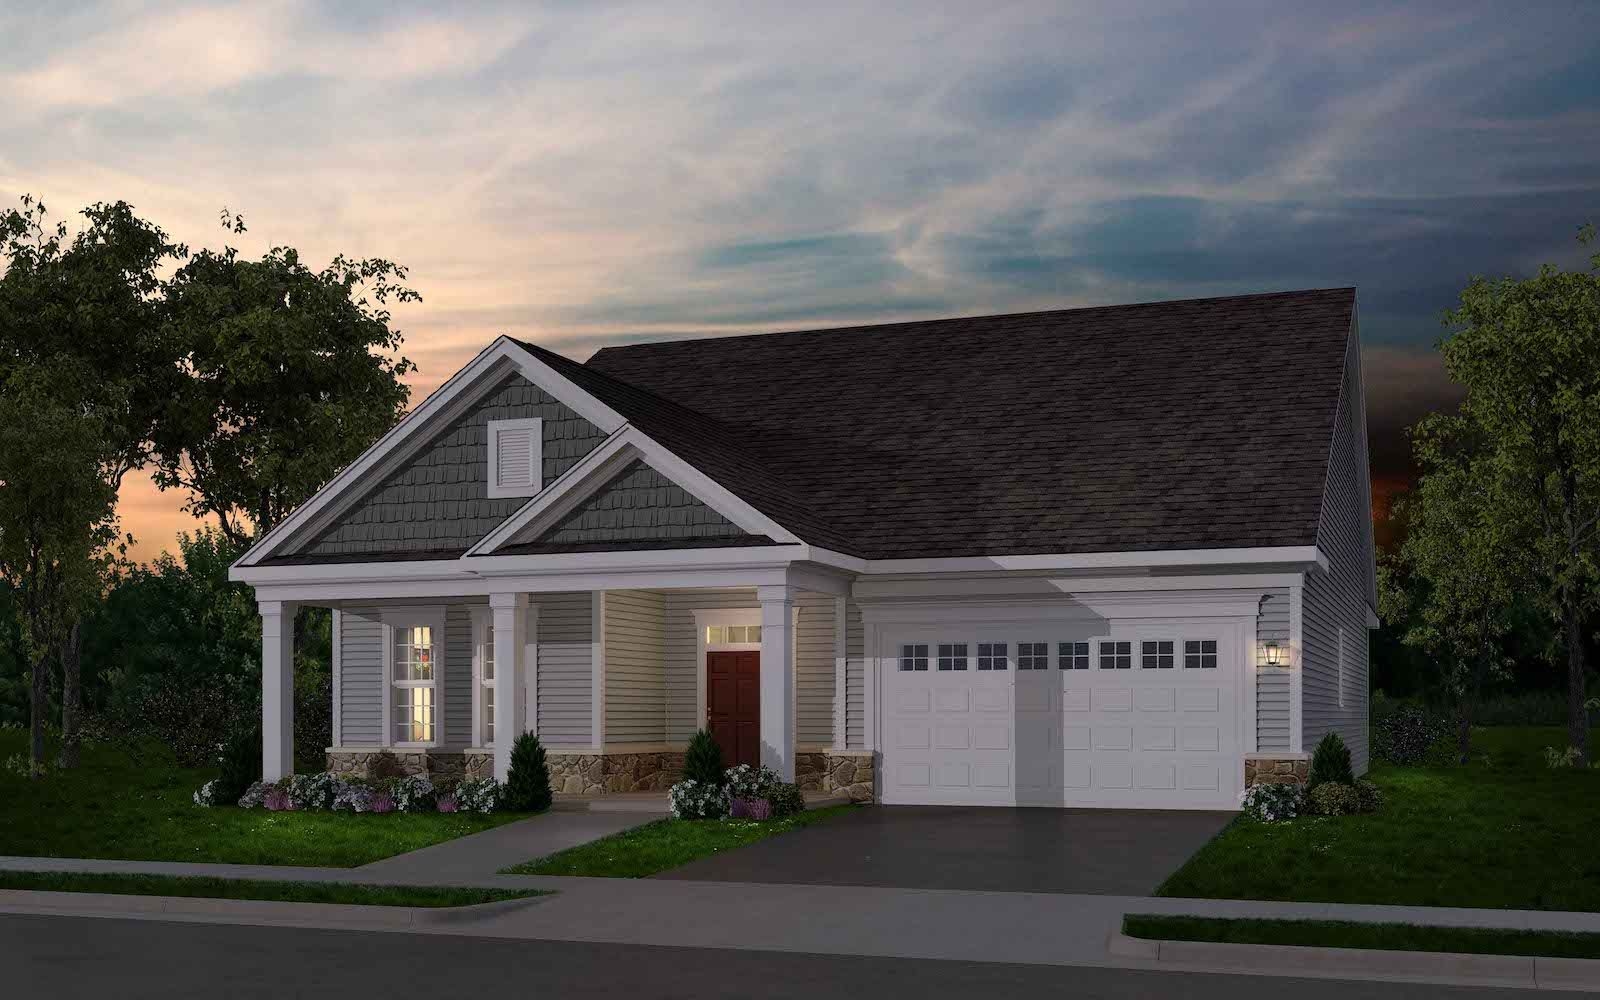 Exterior:Elevation 1 of the Quincy II a home design offered at Heritage Shores in Bridgeville DE by Brookfield Residential